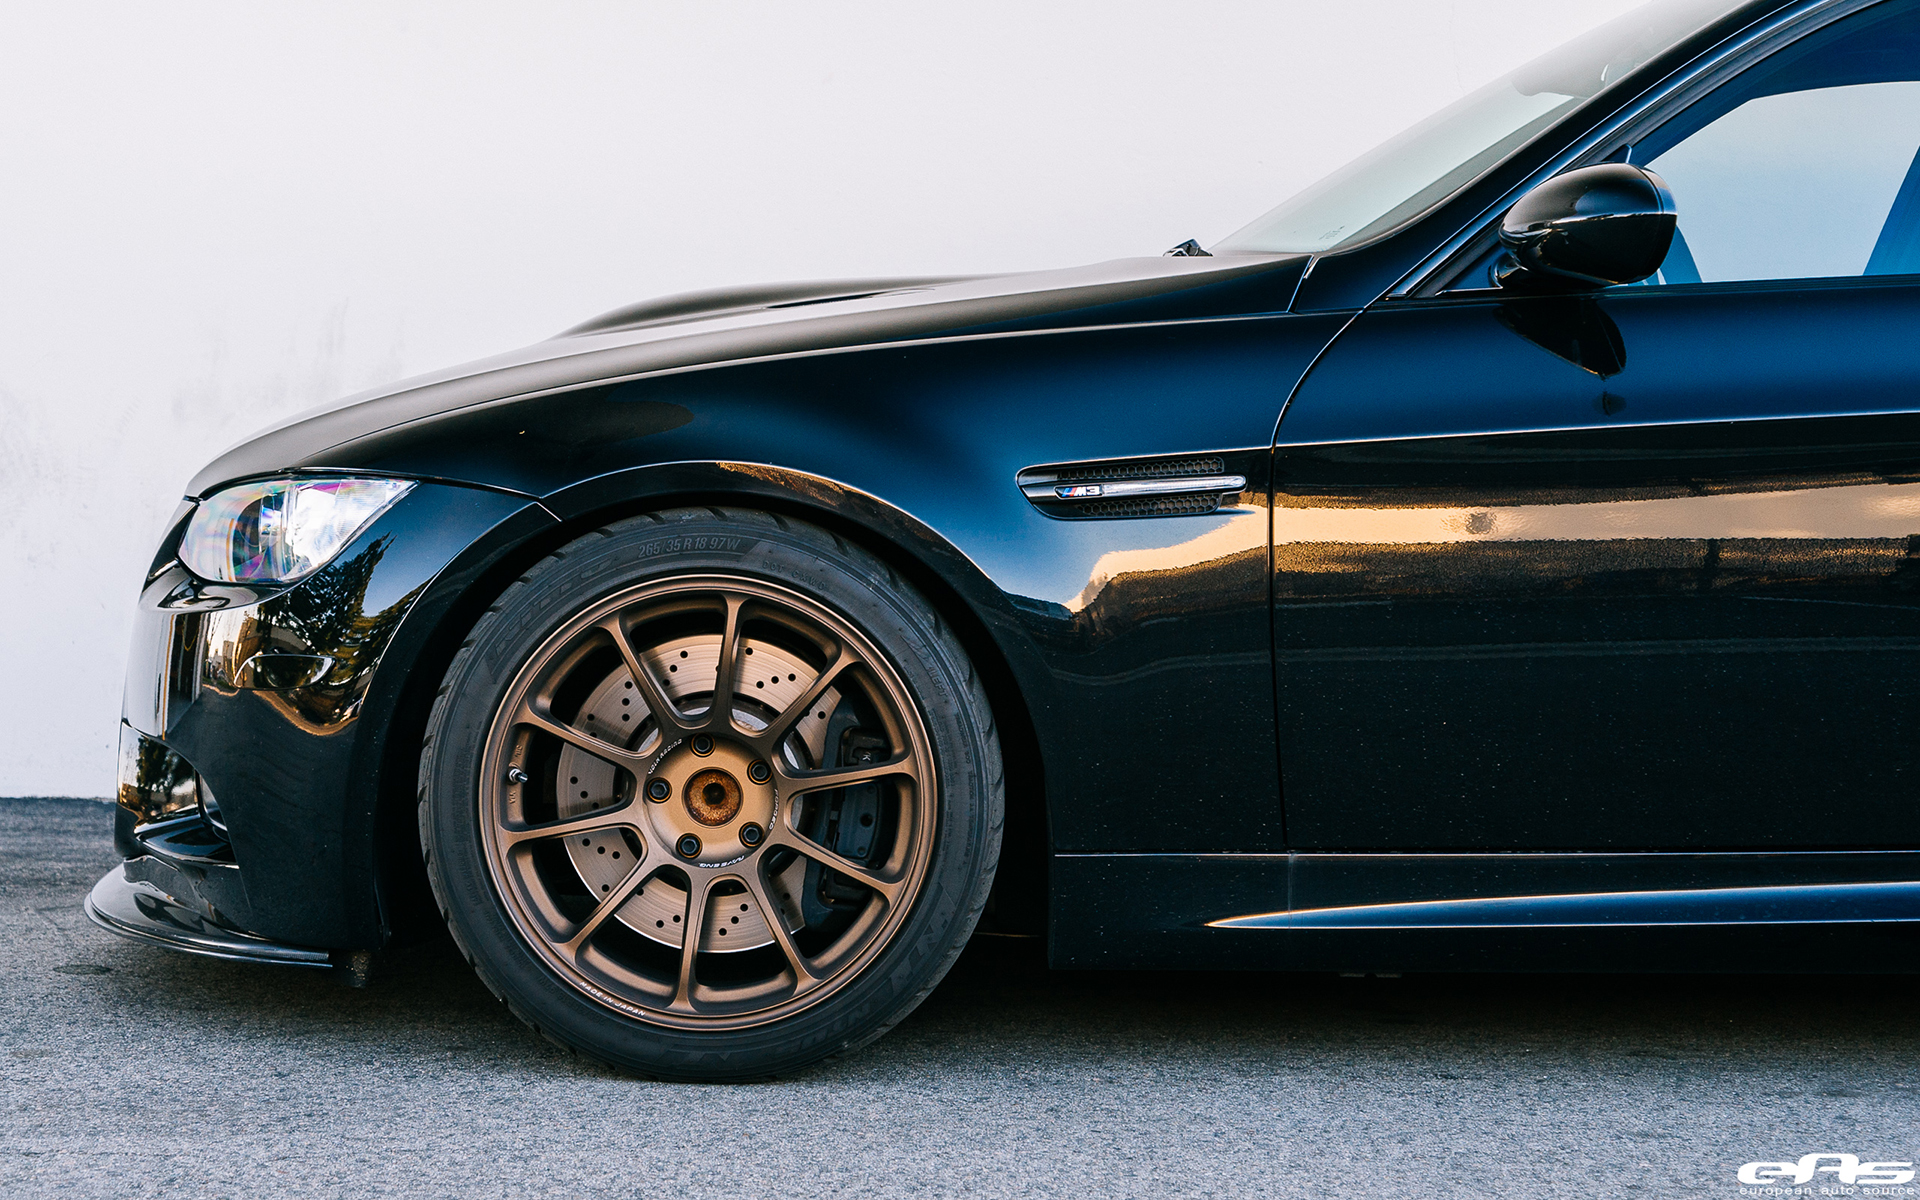 Jerez Black Bmw E90 M3 Sedan Gets A Few Tweaks